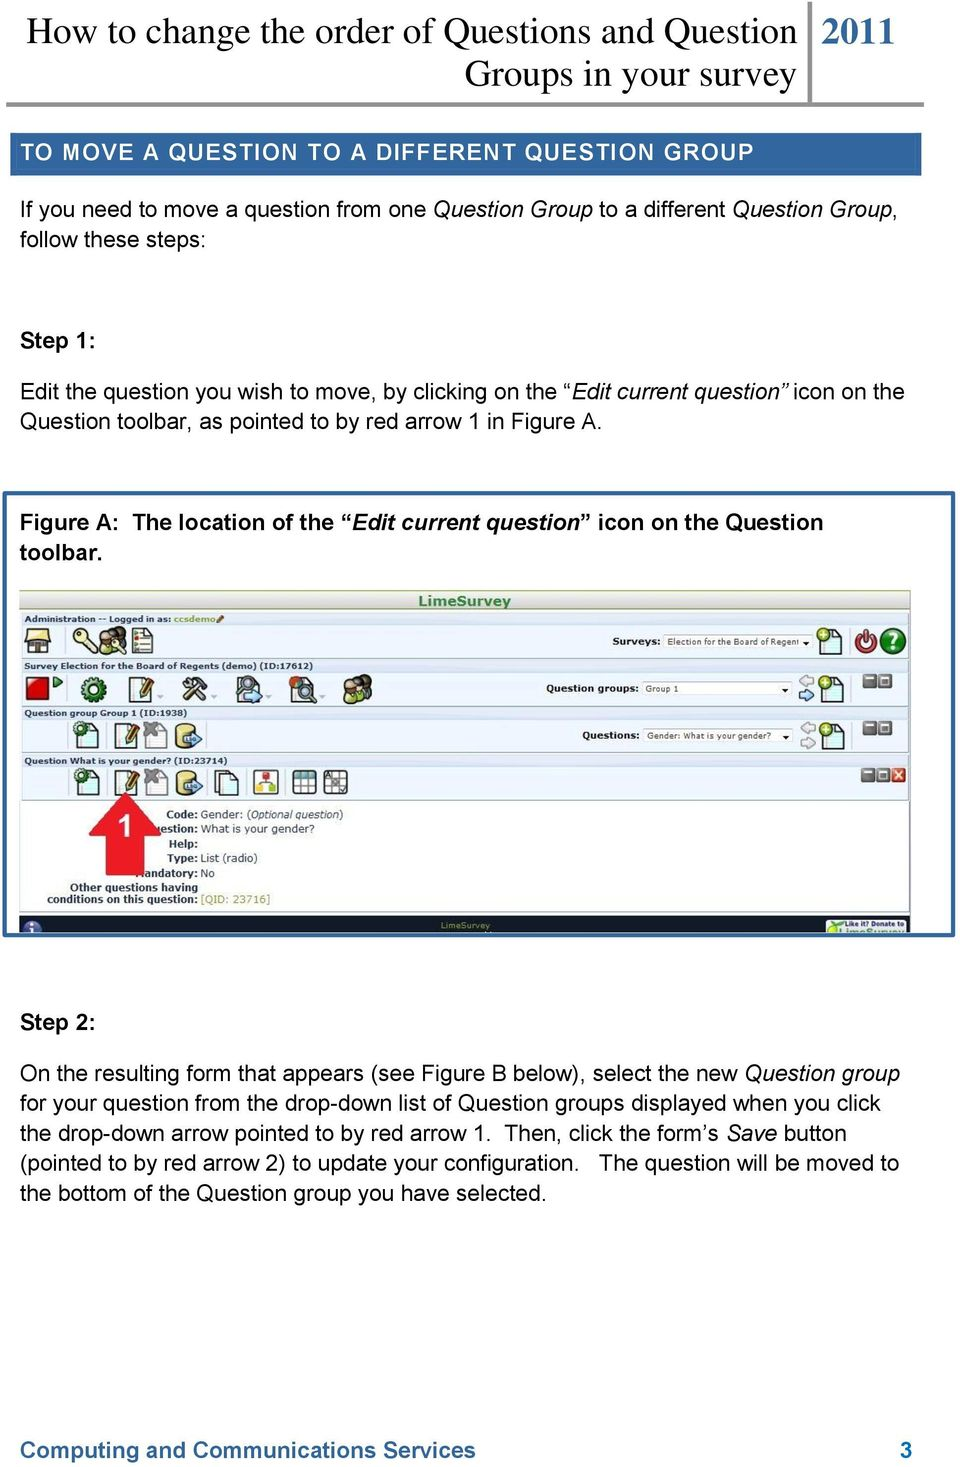 Step 2: On the resulting form that appears (see Figure B below), select the new Question group for your question from the drop-down list of Question groups displayed when you click the drop-down